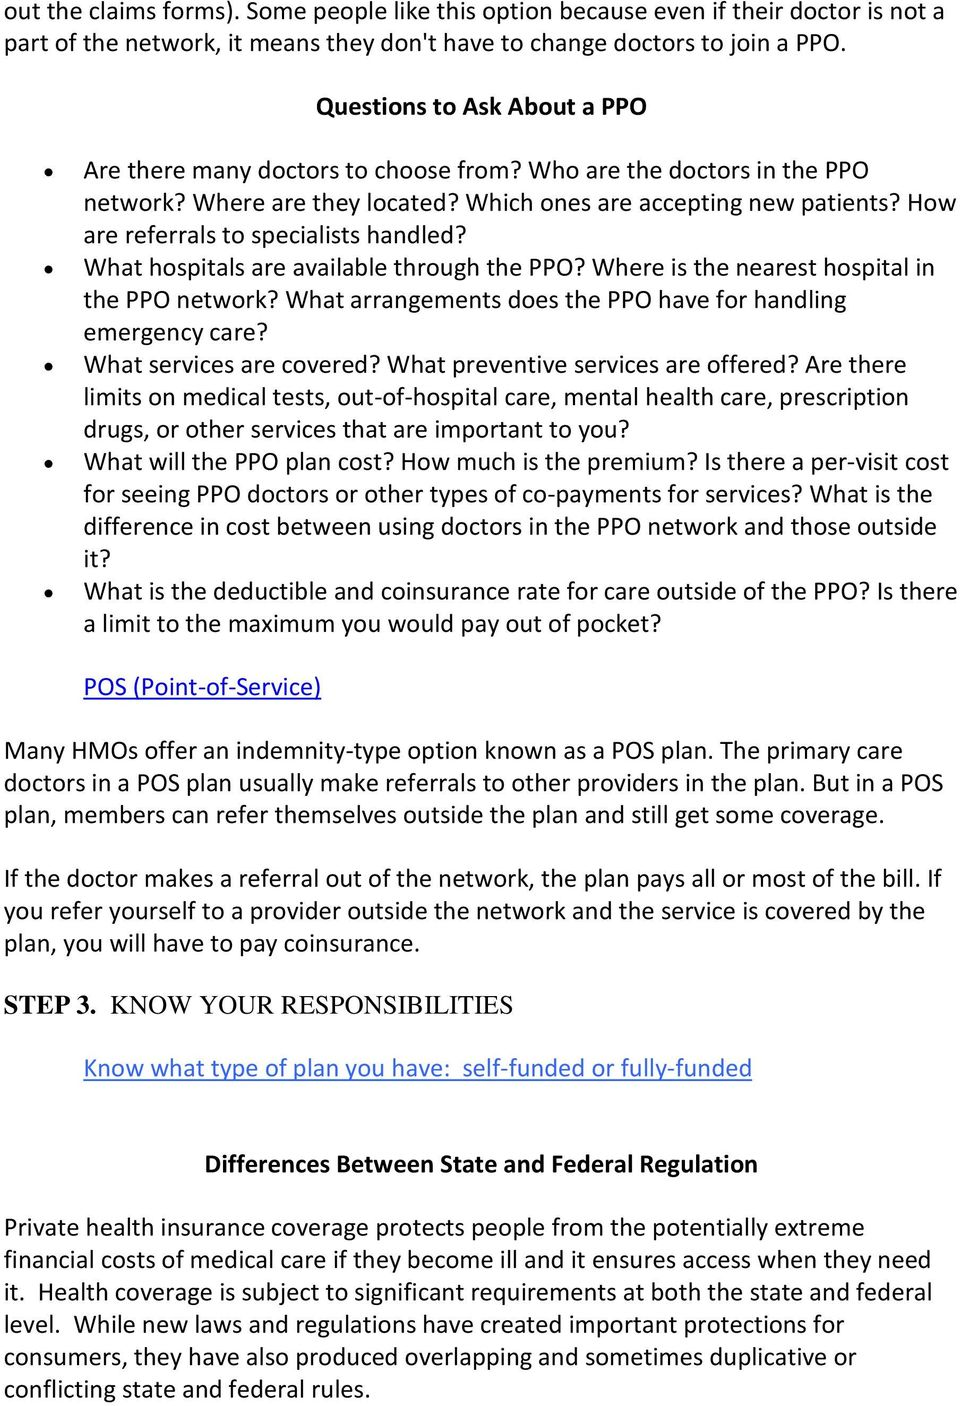 How are referrals to specialists handled? What hospitals are available through the PPO? Where is the nearest hospital in the PPO network?